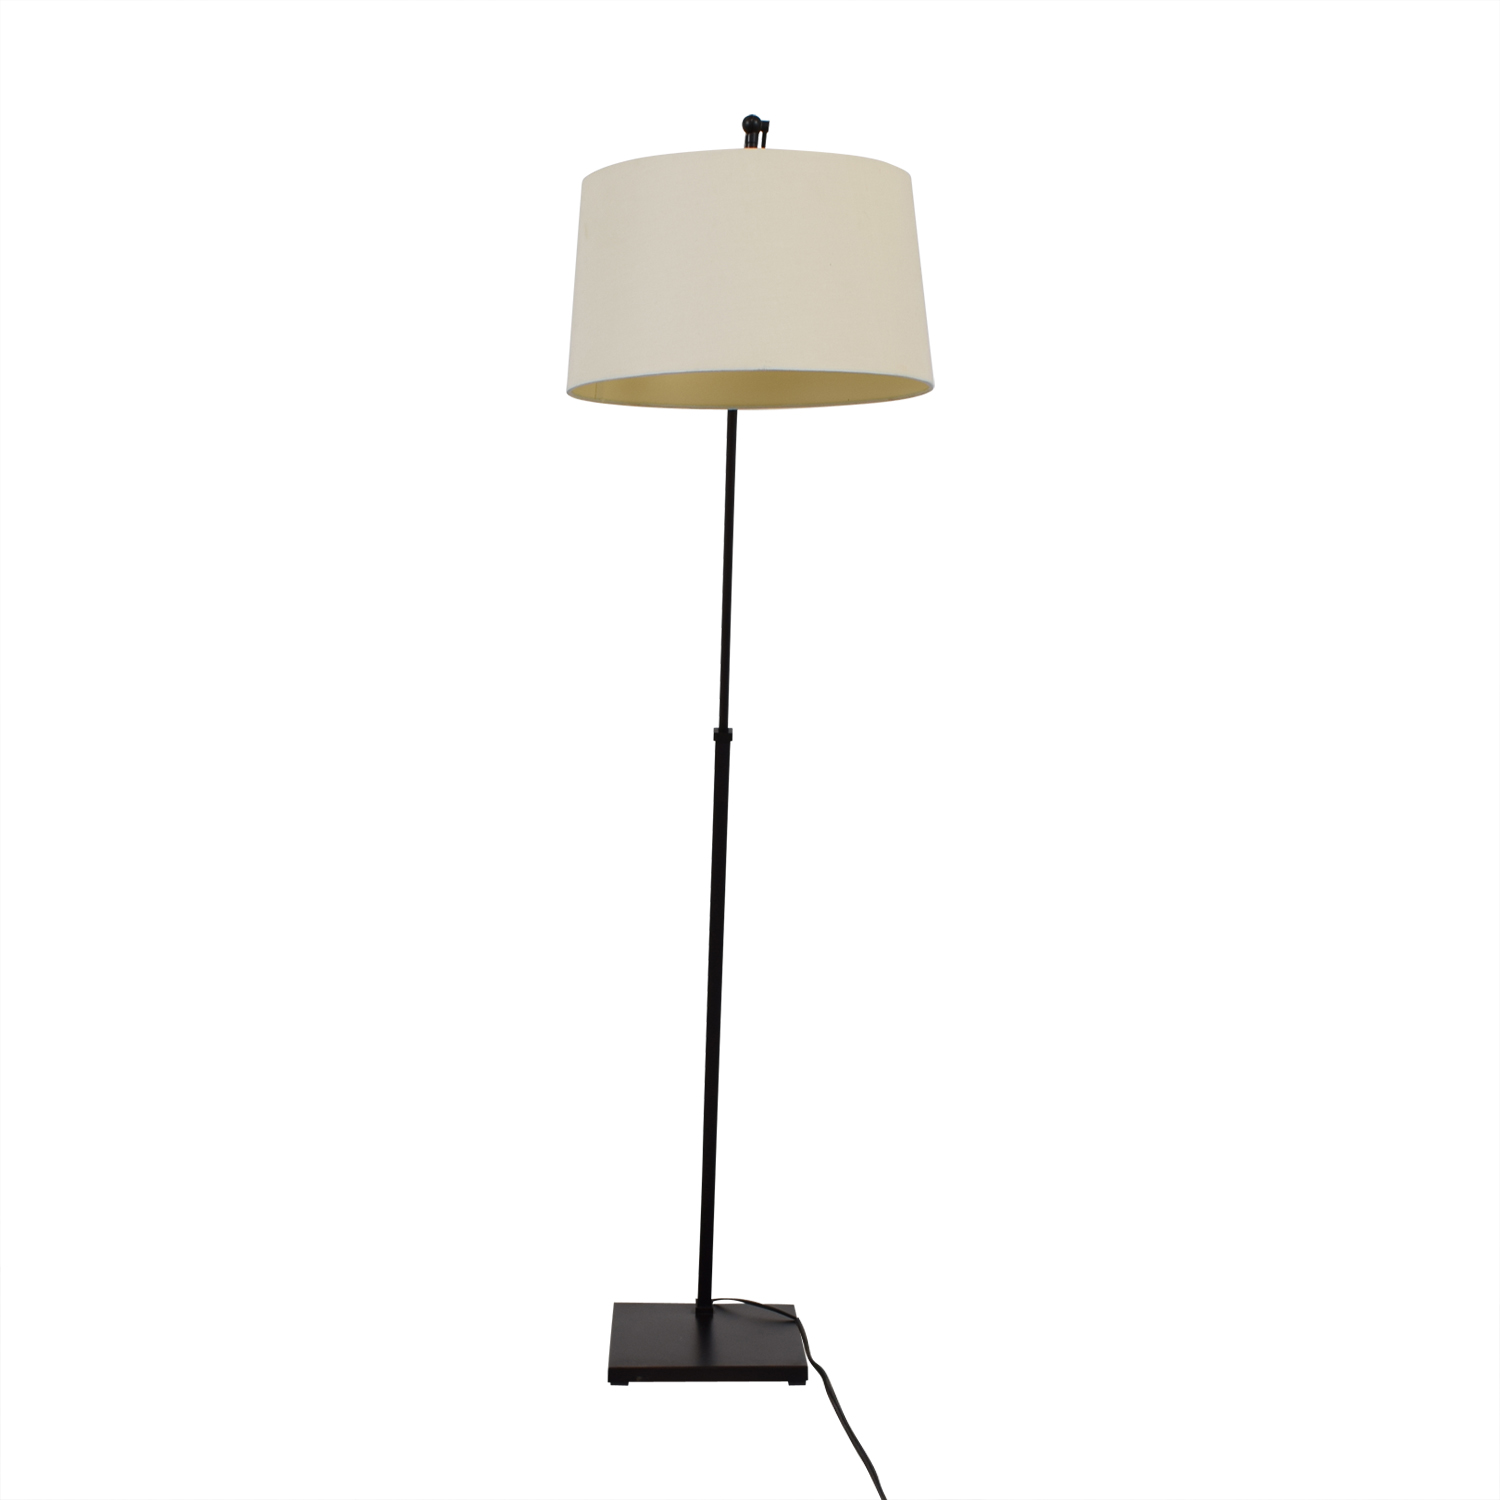 shop Crate & Barrel Dexter Arc Floor Lamp with White Shade Crate & Barrel